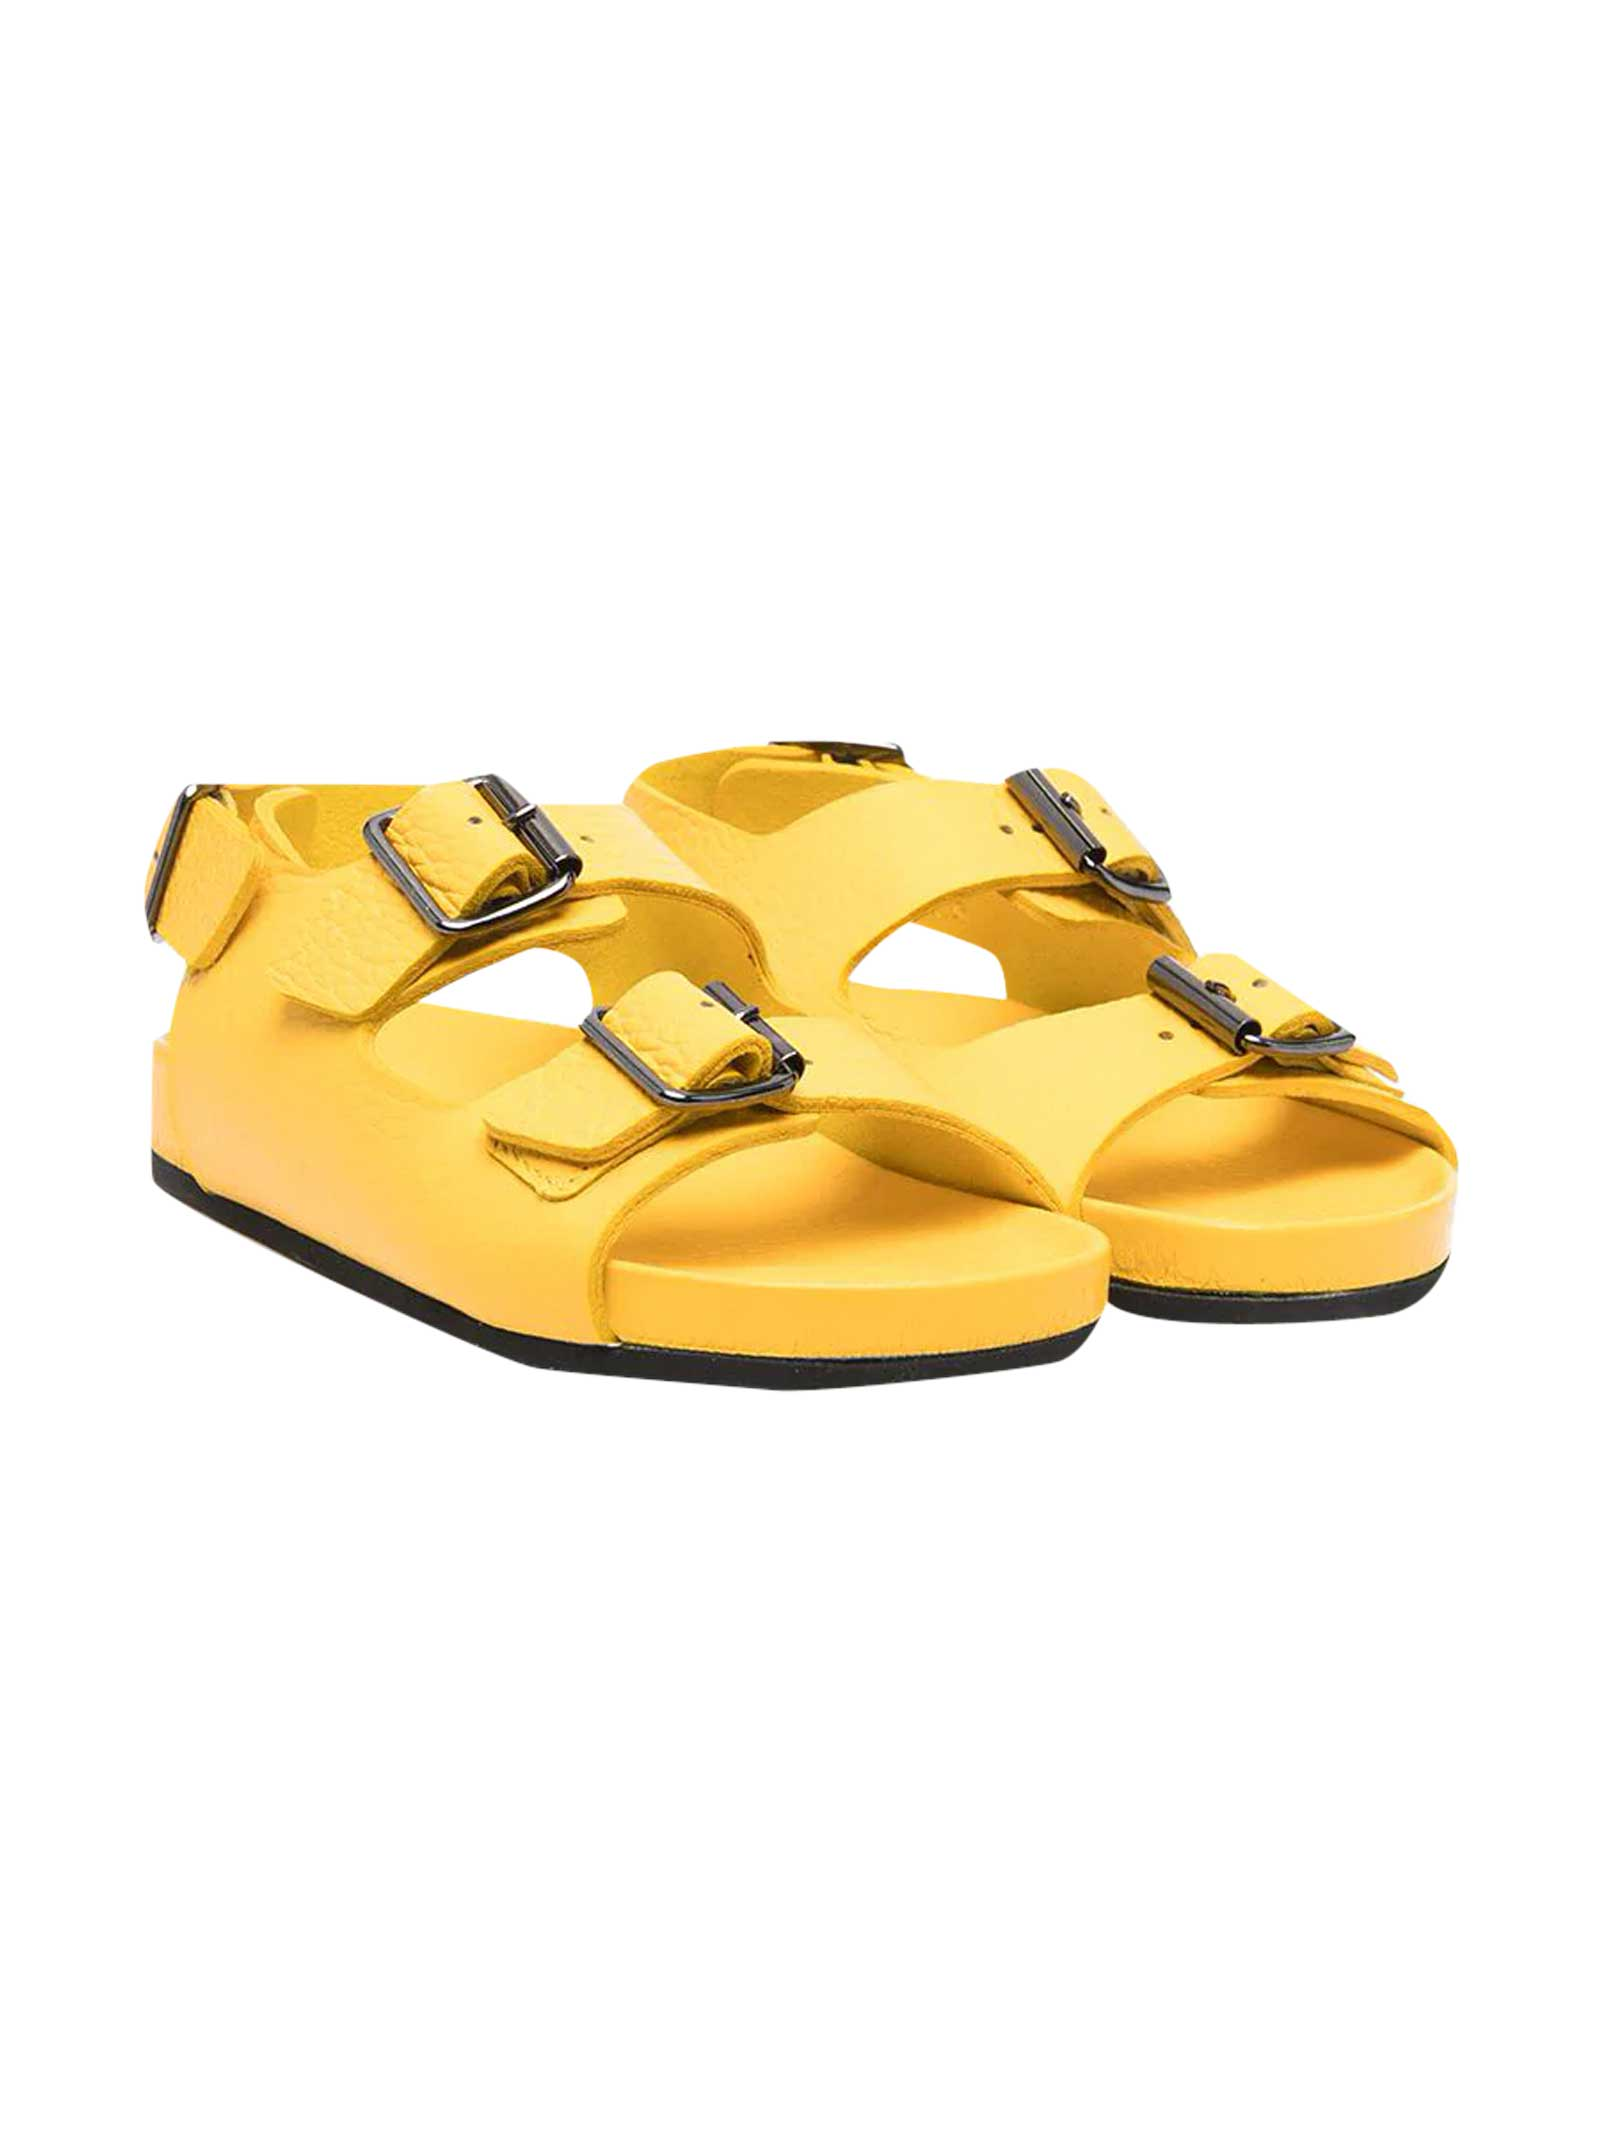 Sandals With Yellow Buckle